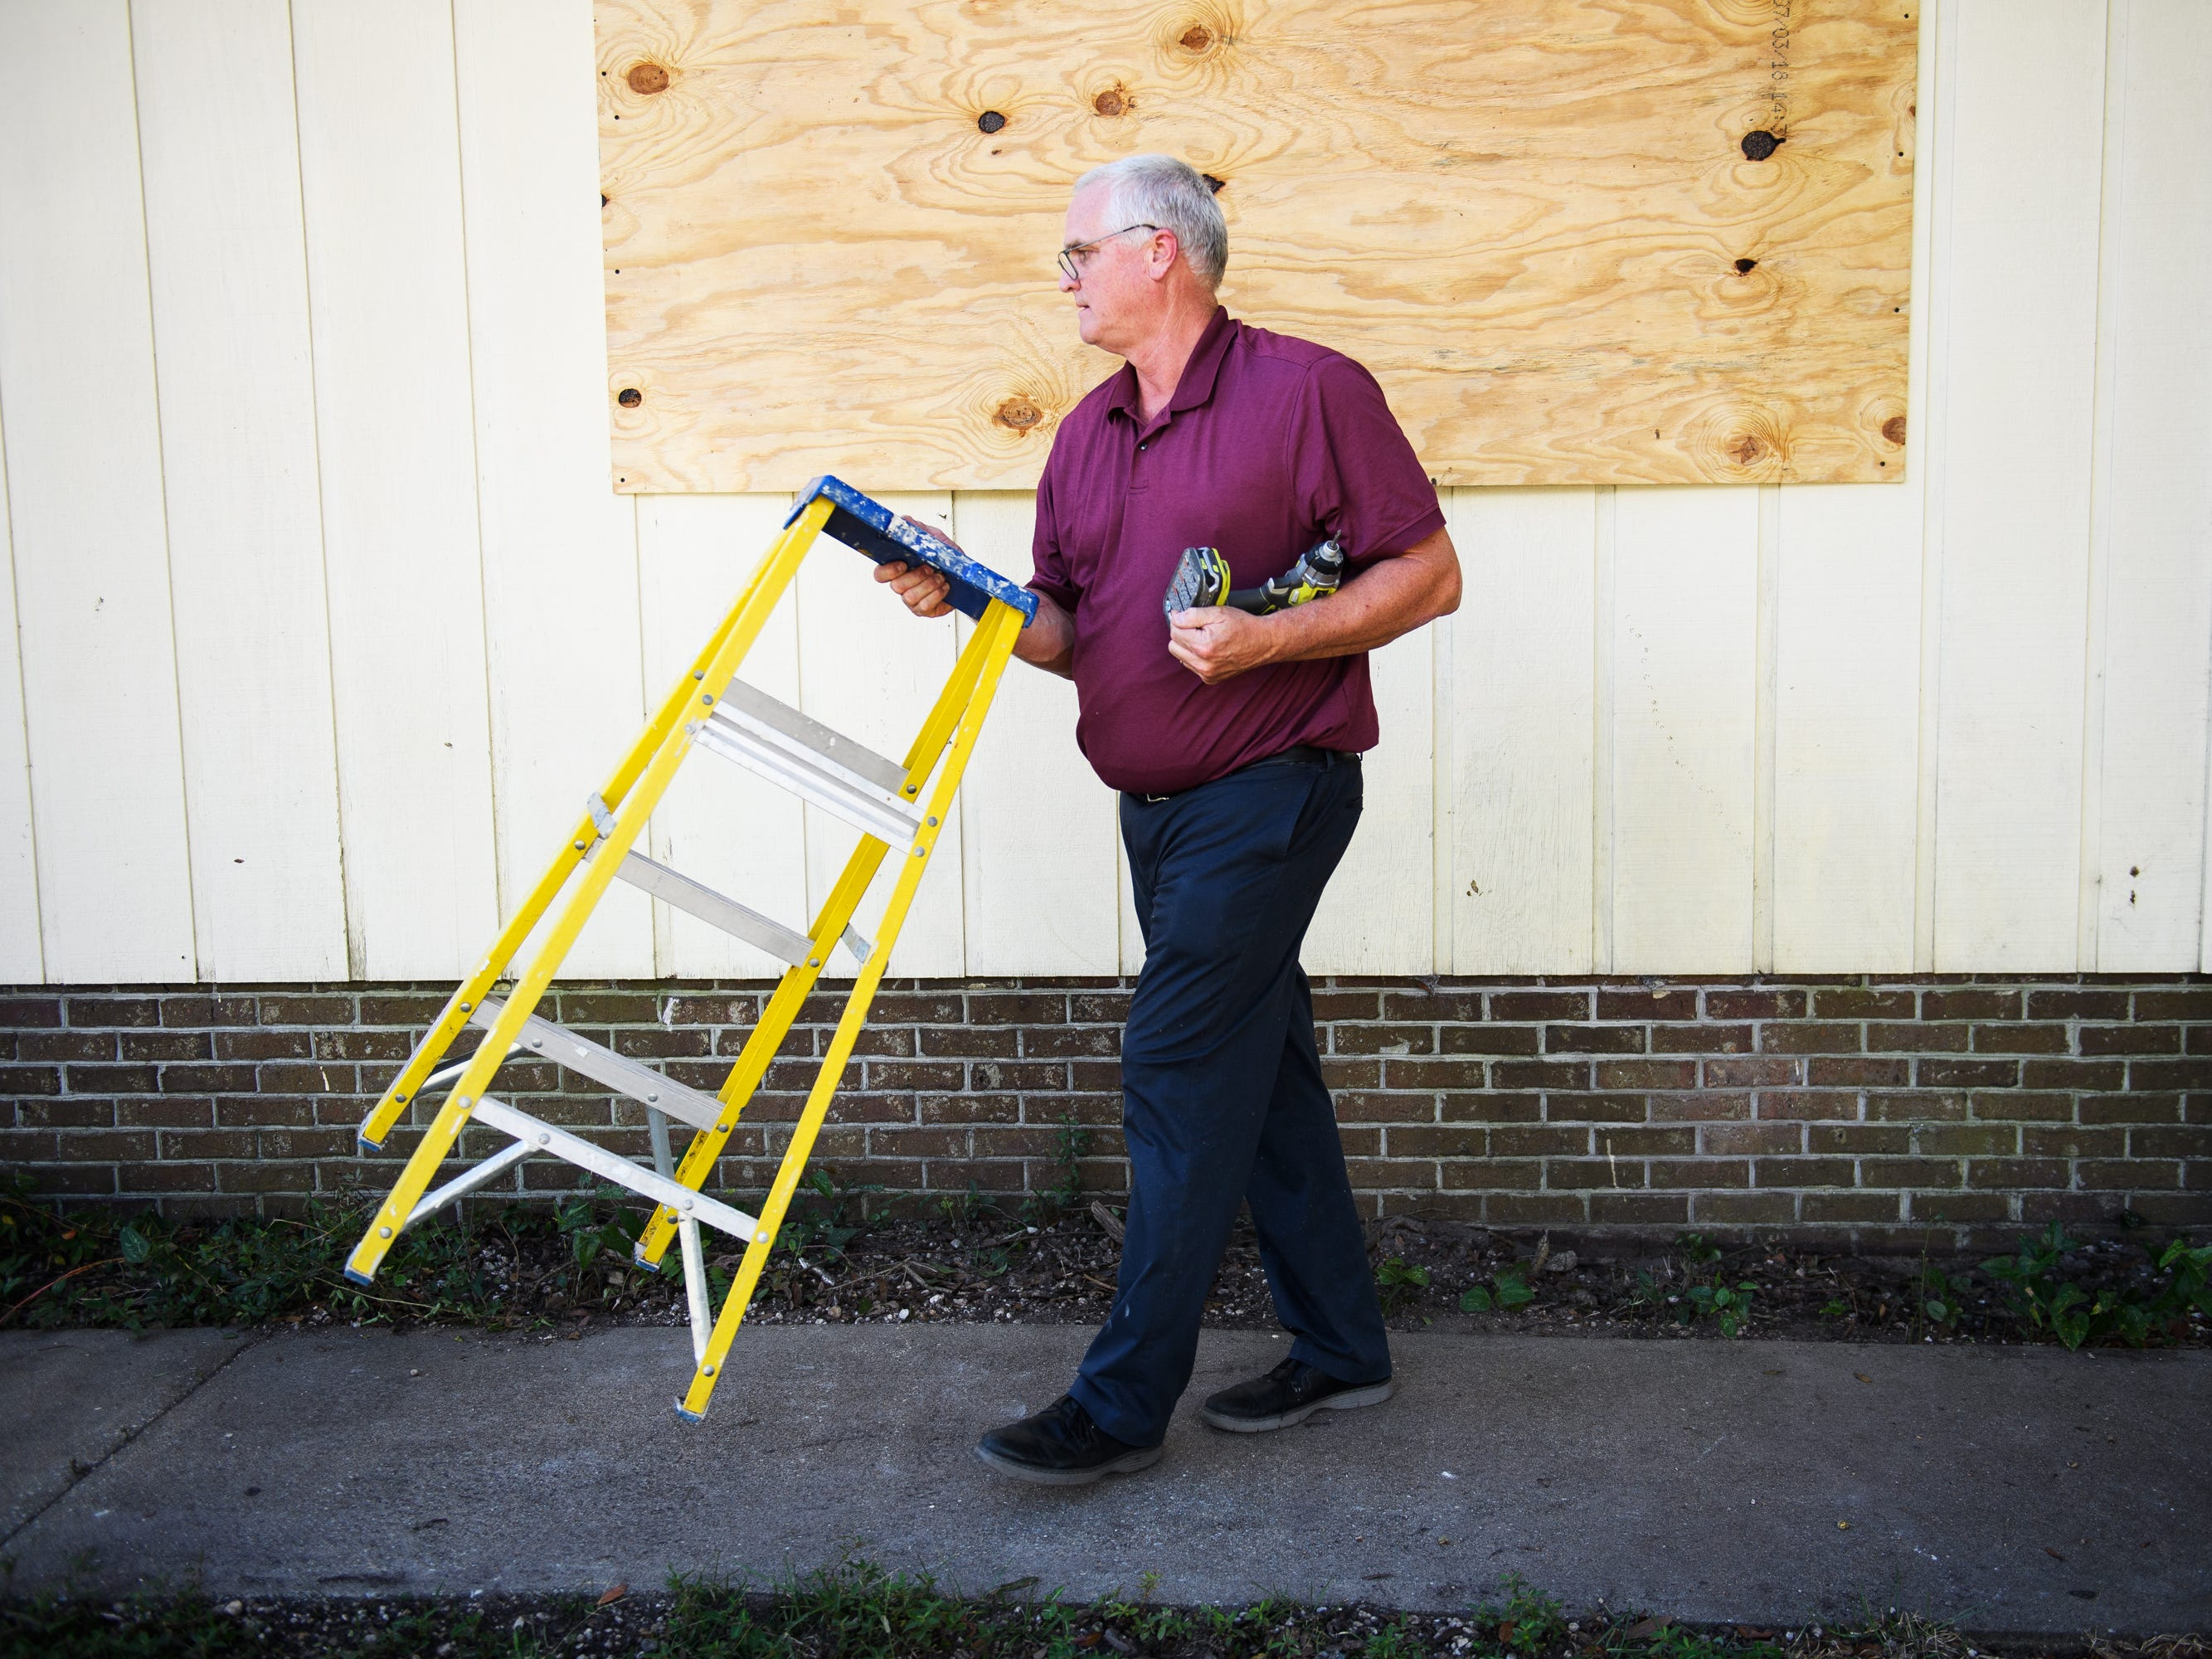 Don Ludemann boards up the windows of his second home in North Myrtle Beach on Tuesday, Sept. 11, 2018, days before Hurricane Florence is expected to hit the South and North Carolina coasts.